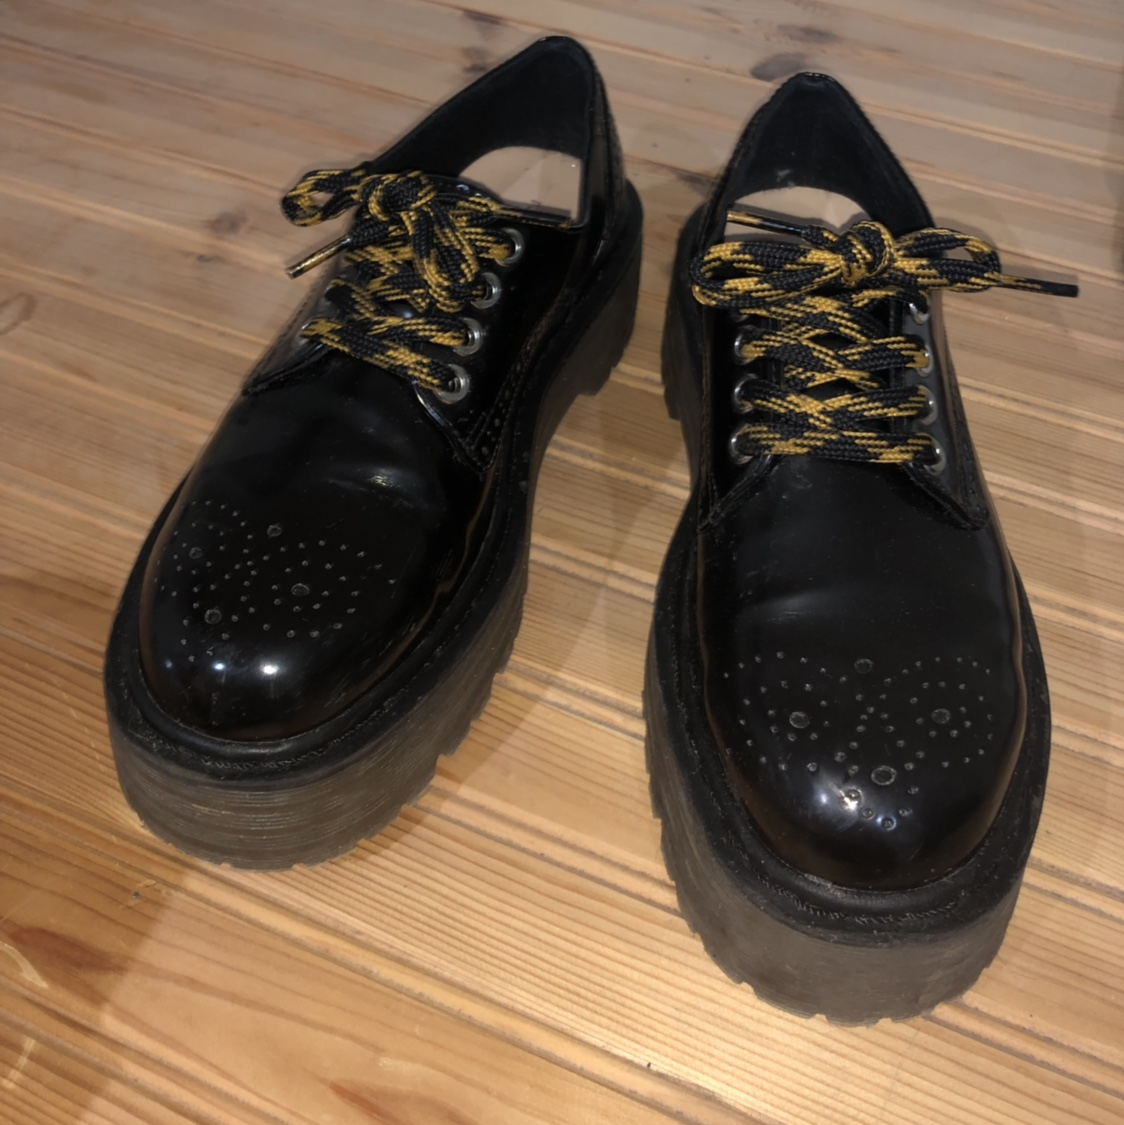 Black Platform shoes from Pull and Bear